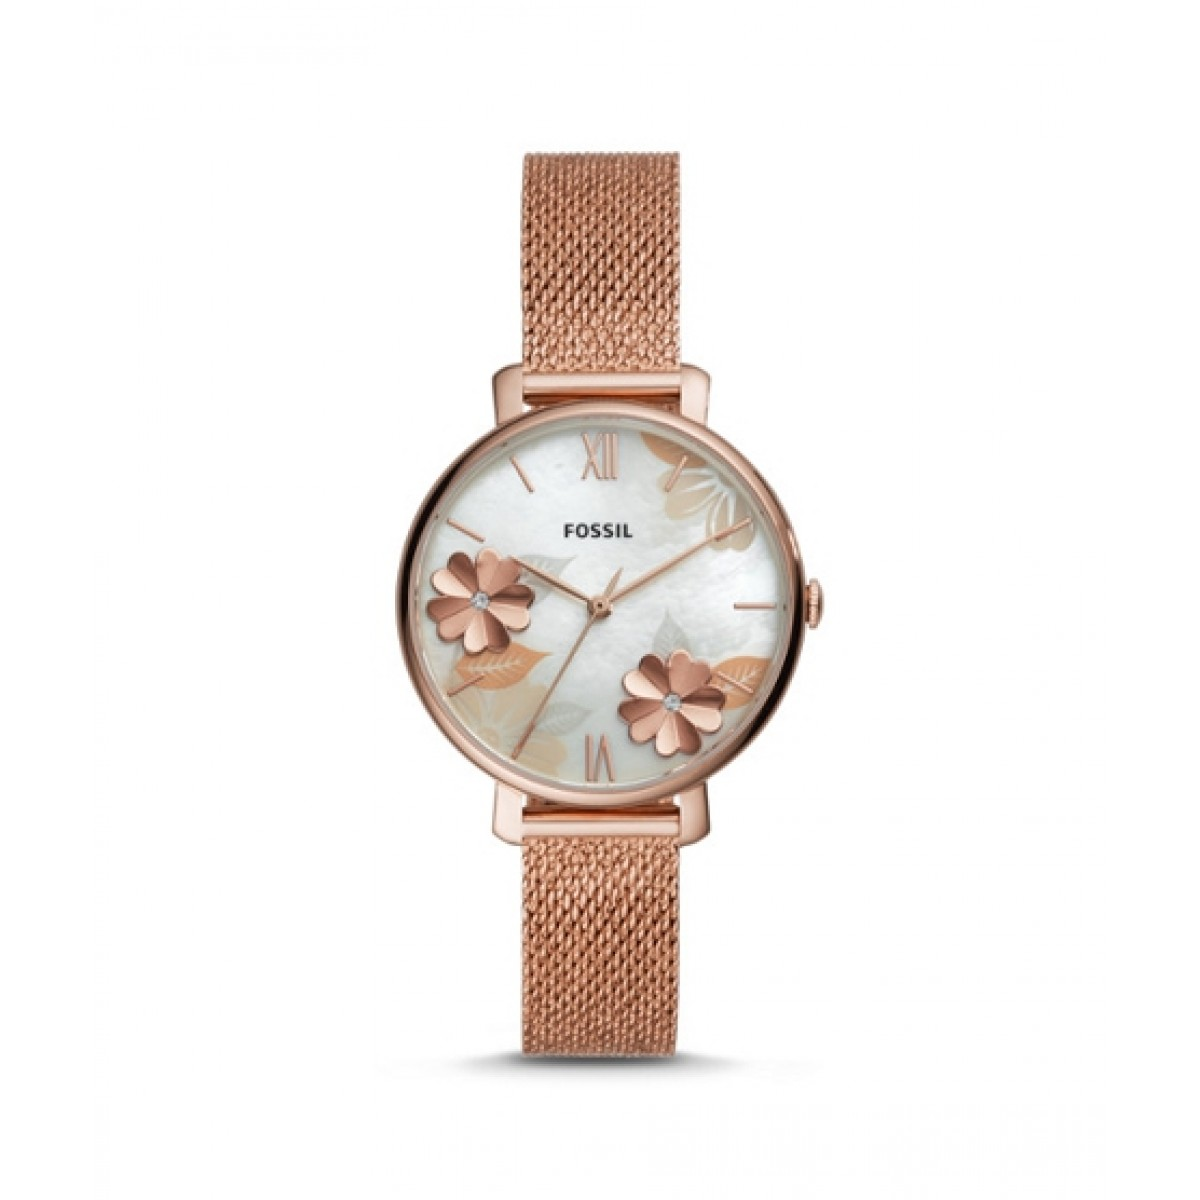 73d3e21d9 Fossil Jacqueline Women's Watch (ES4534P) Price in Pakistan | Fossil  Three-Hand Women's Watch Rose Gold-Tone | iShopping.pk